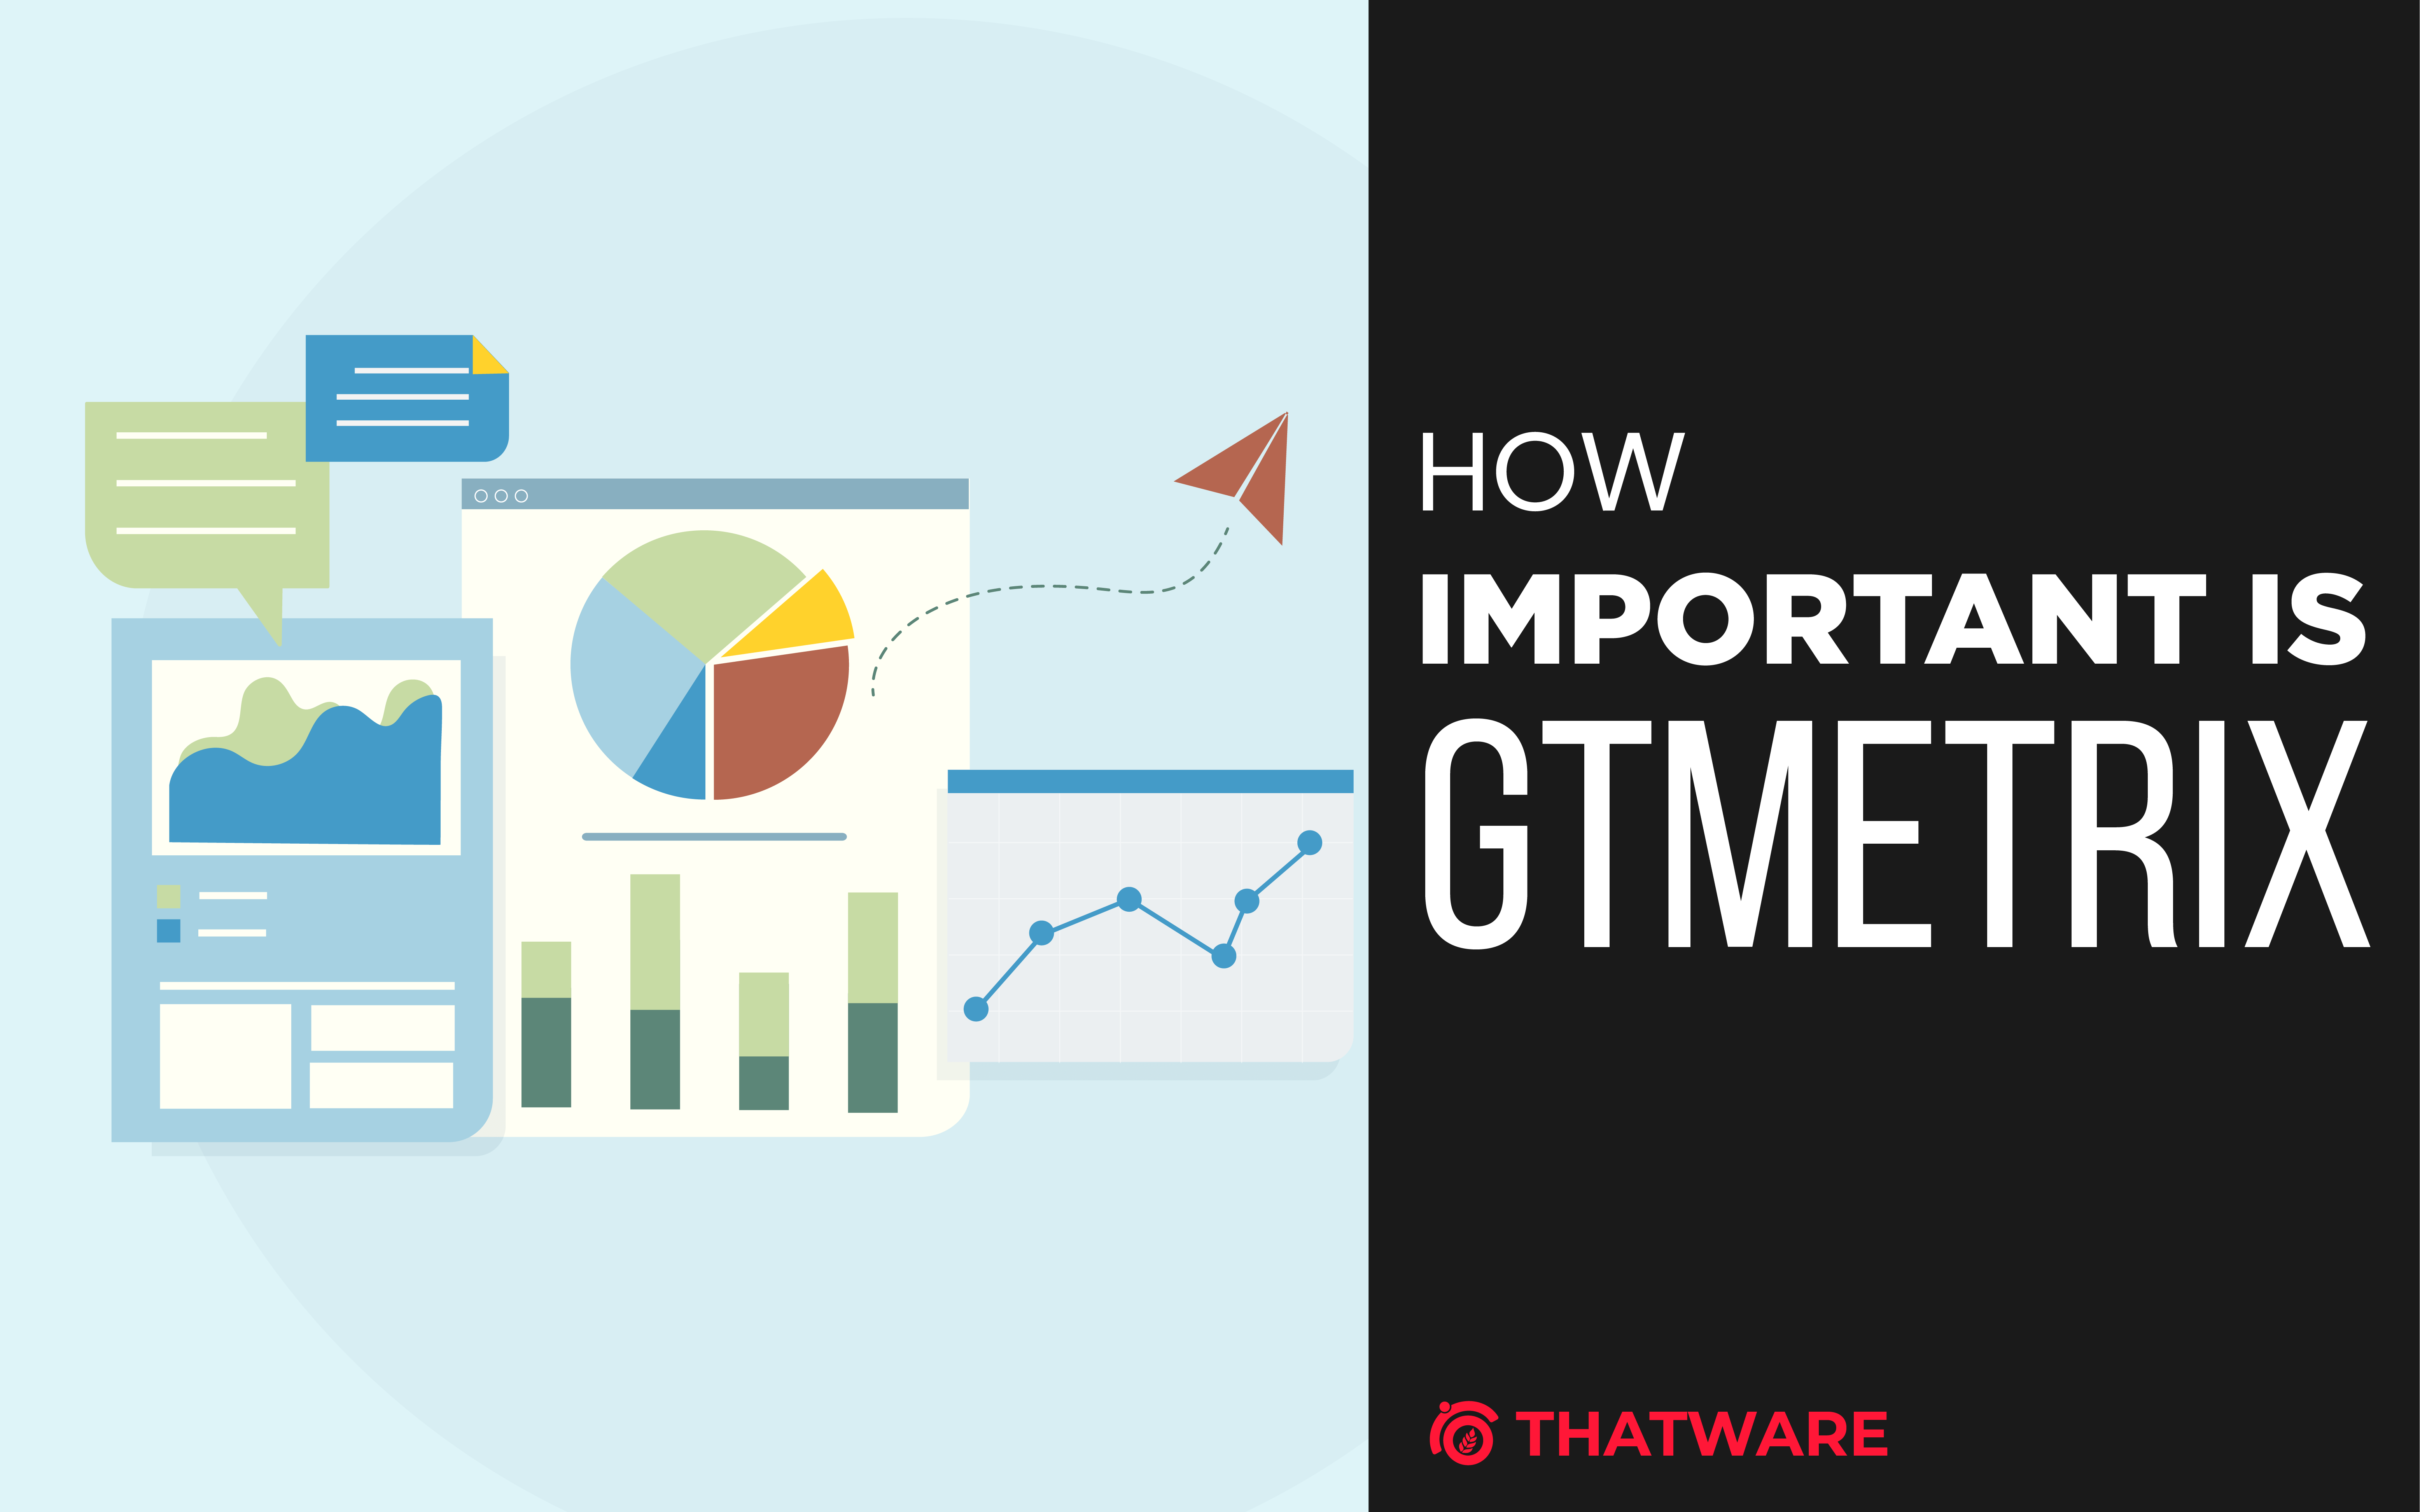 Importance of GTMetrix Score